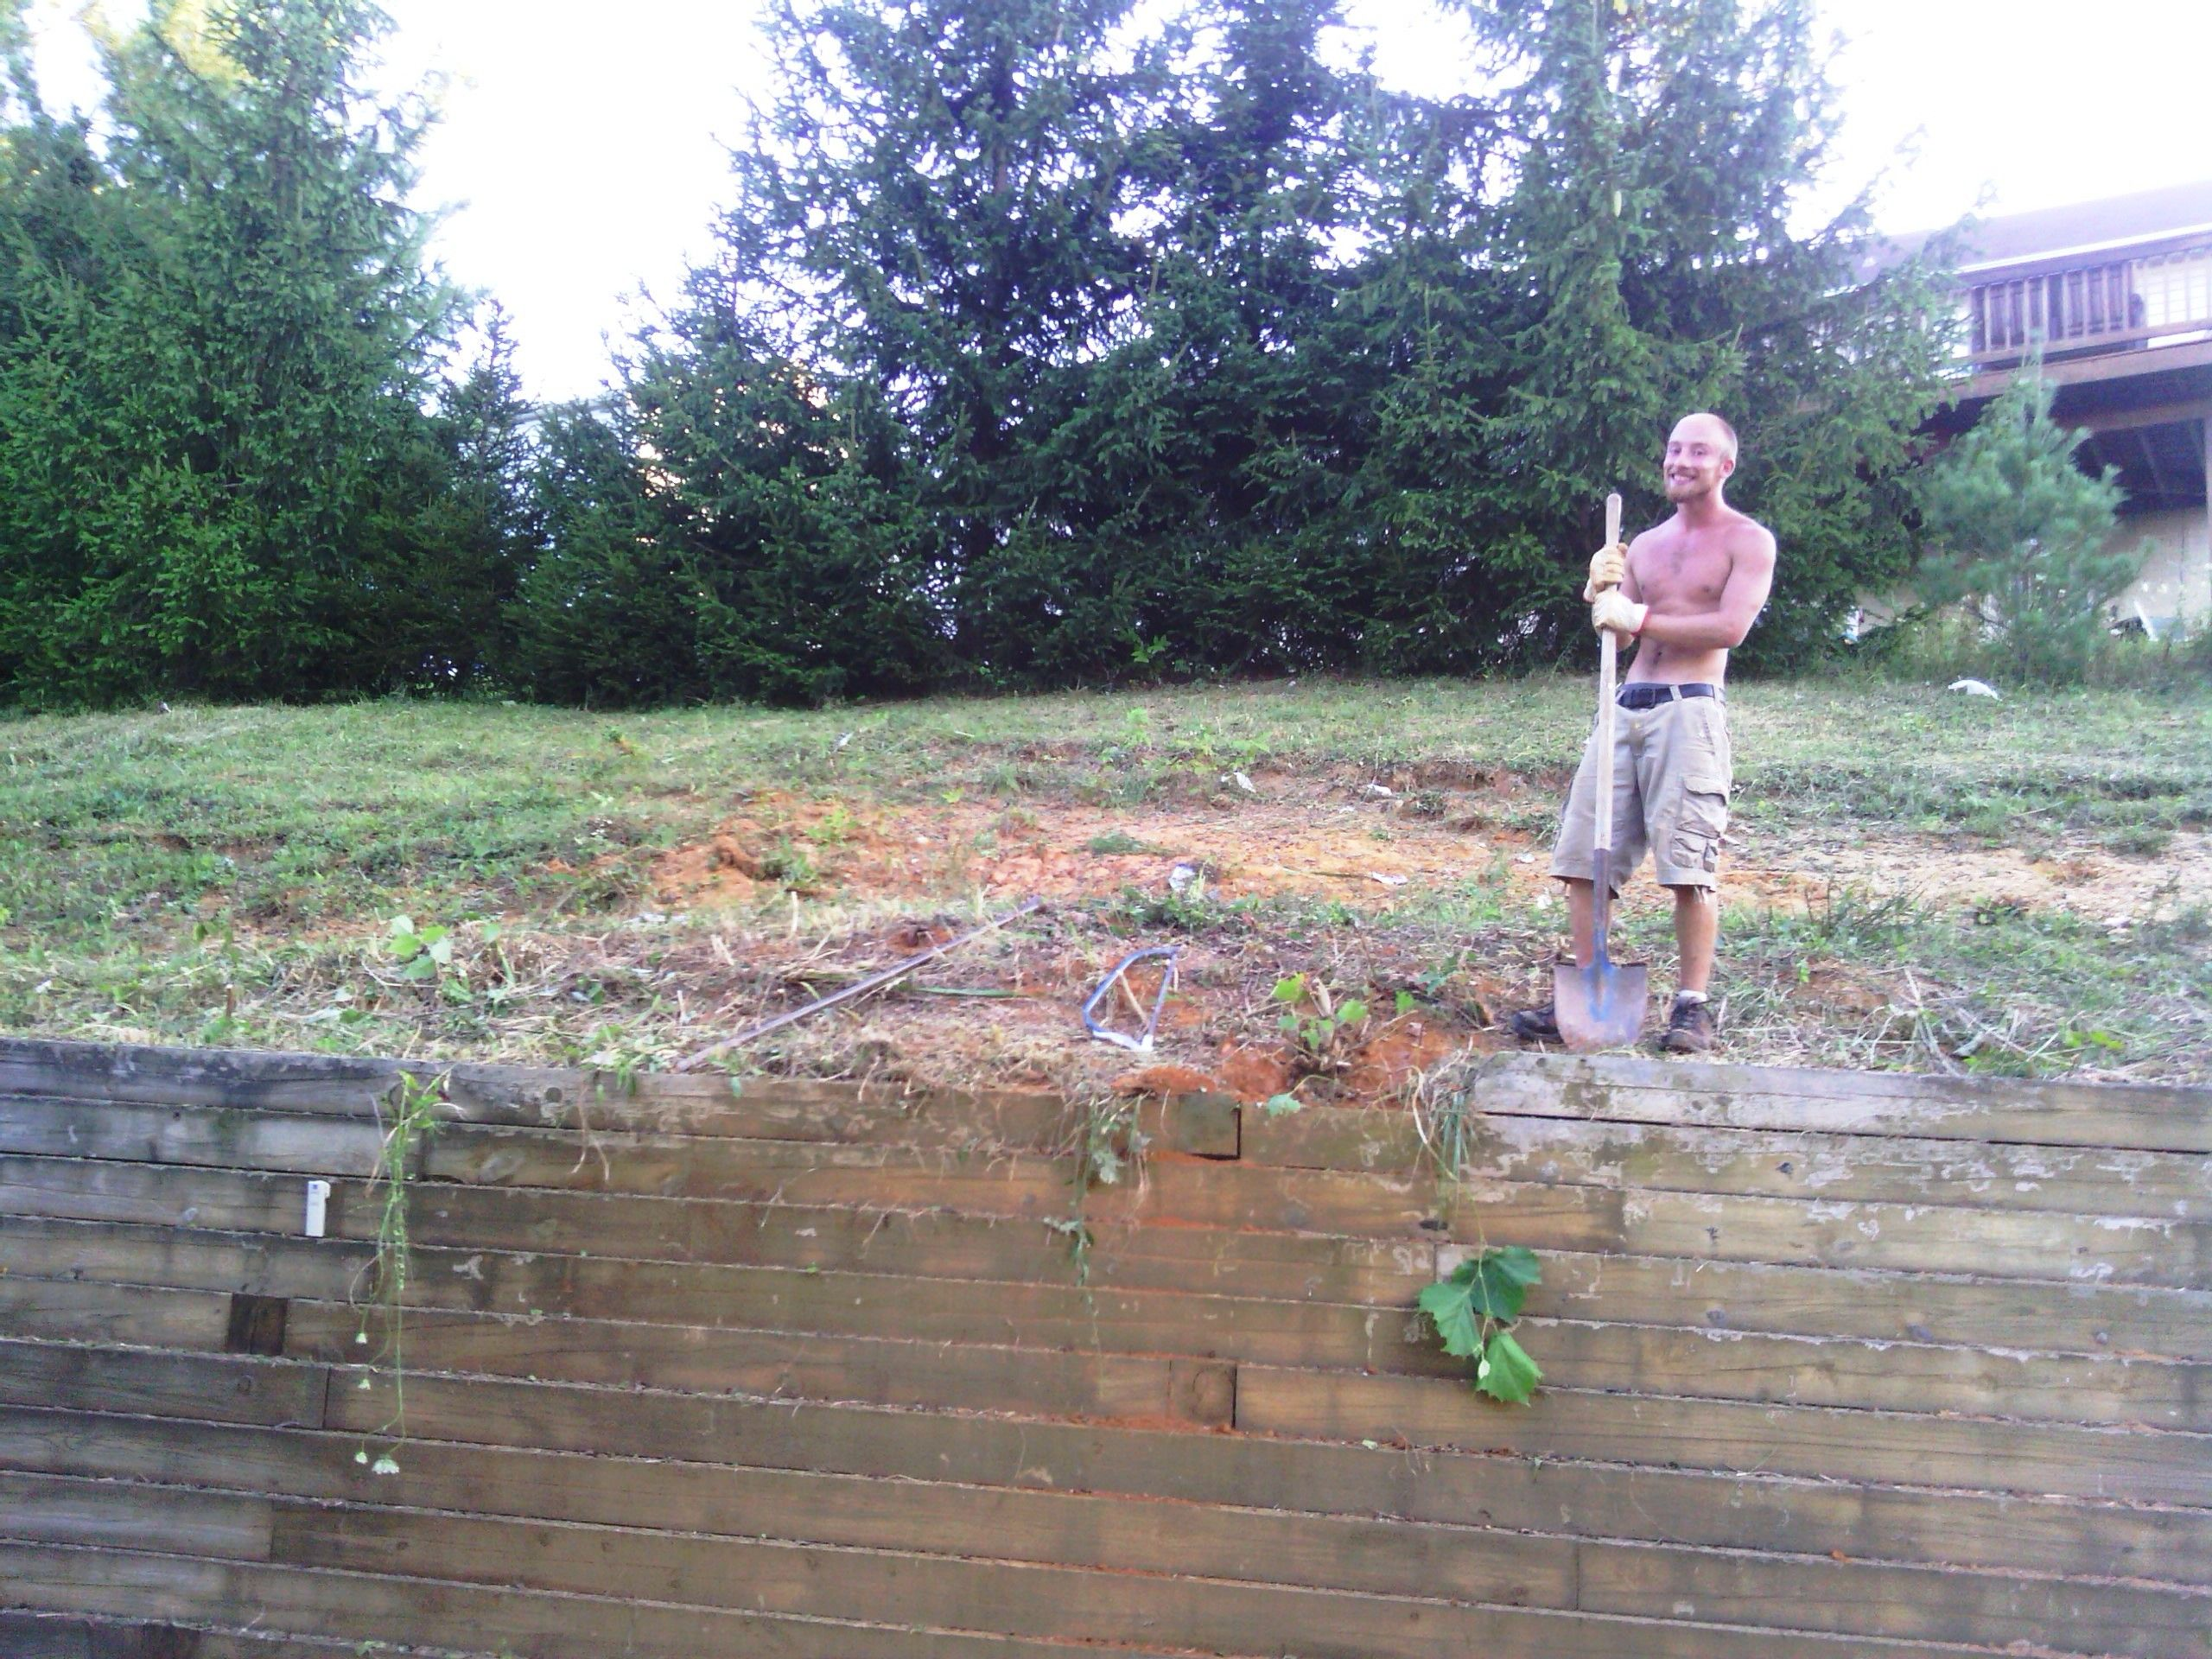 Just Finished An 8 Hour Yard Clean Up Removing High Weeds And Small Trees That Were